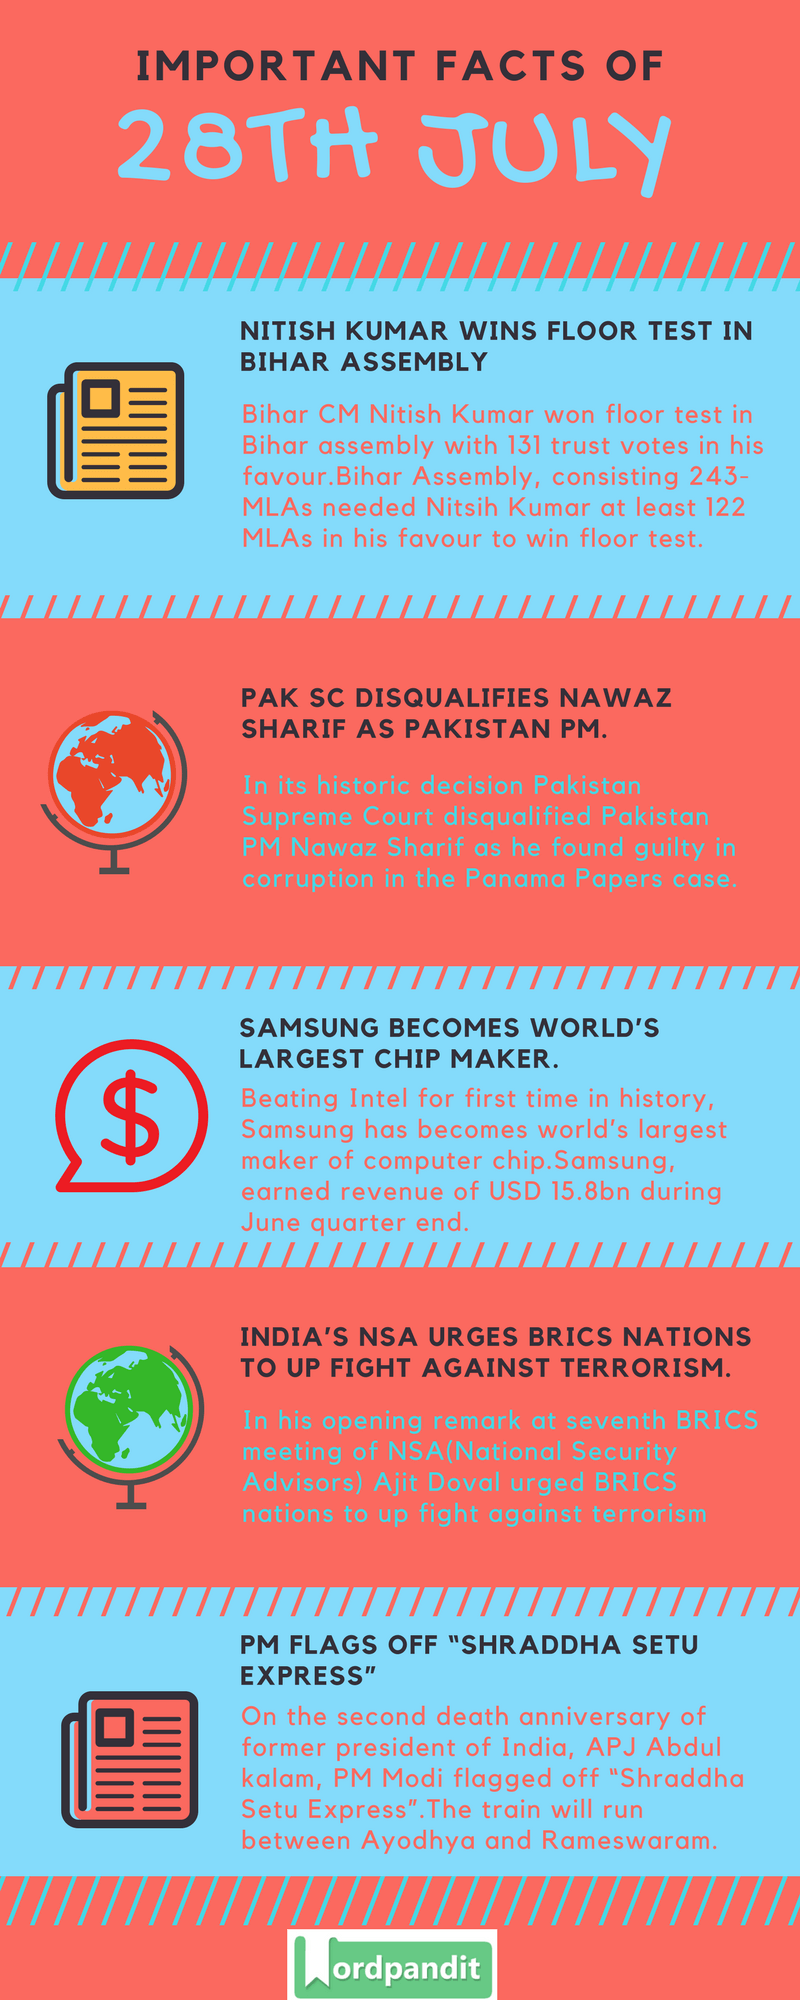 Daily-Current-Affairs-28-july-2017-Current-Affairs-Quiz-july-28-2017-Current-Affairs-Infographic